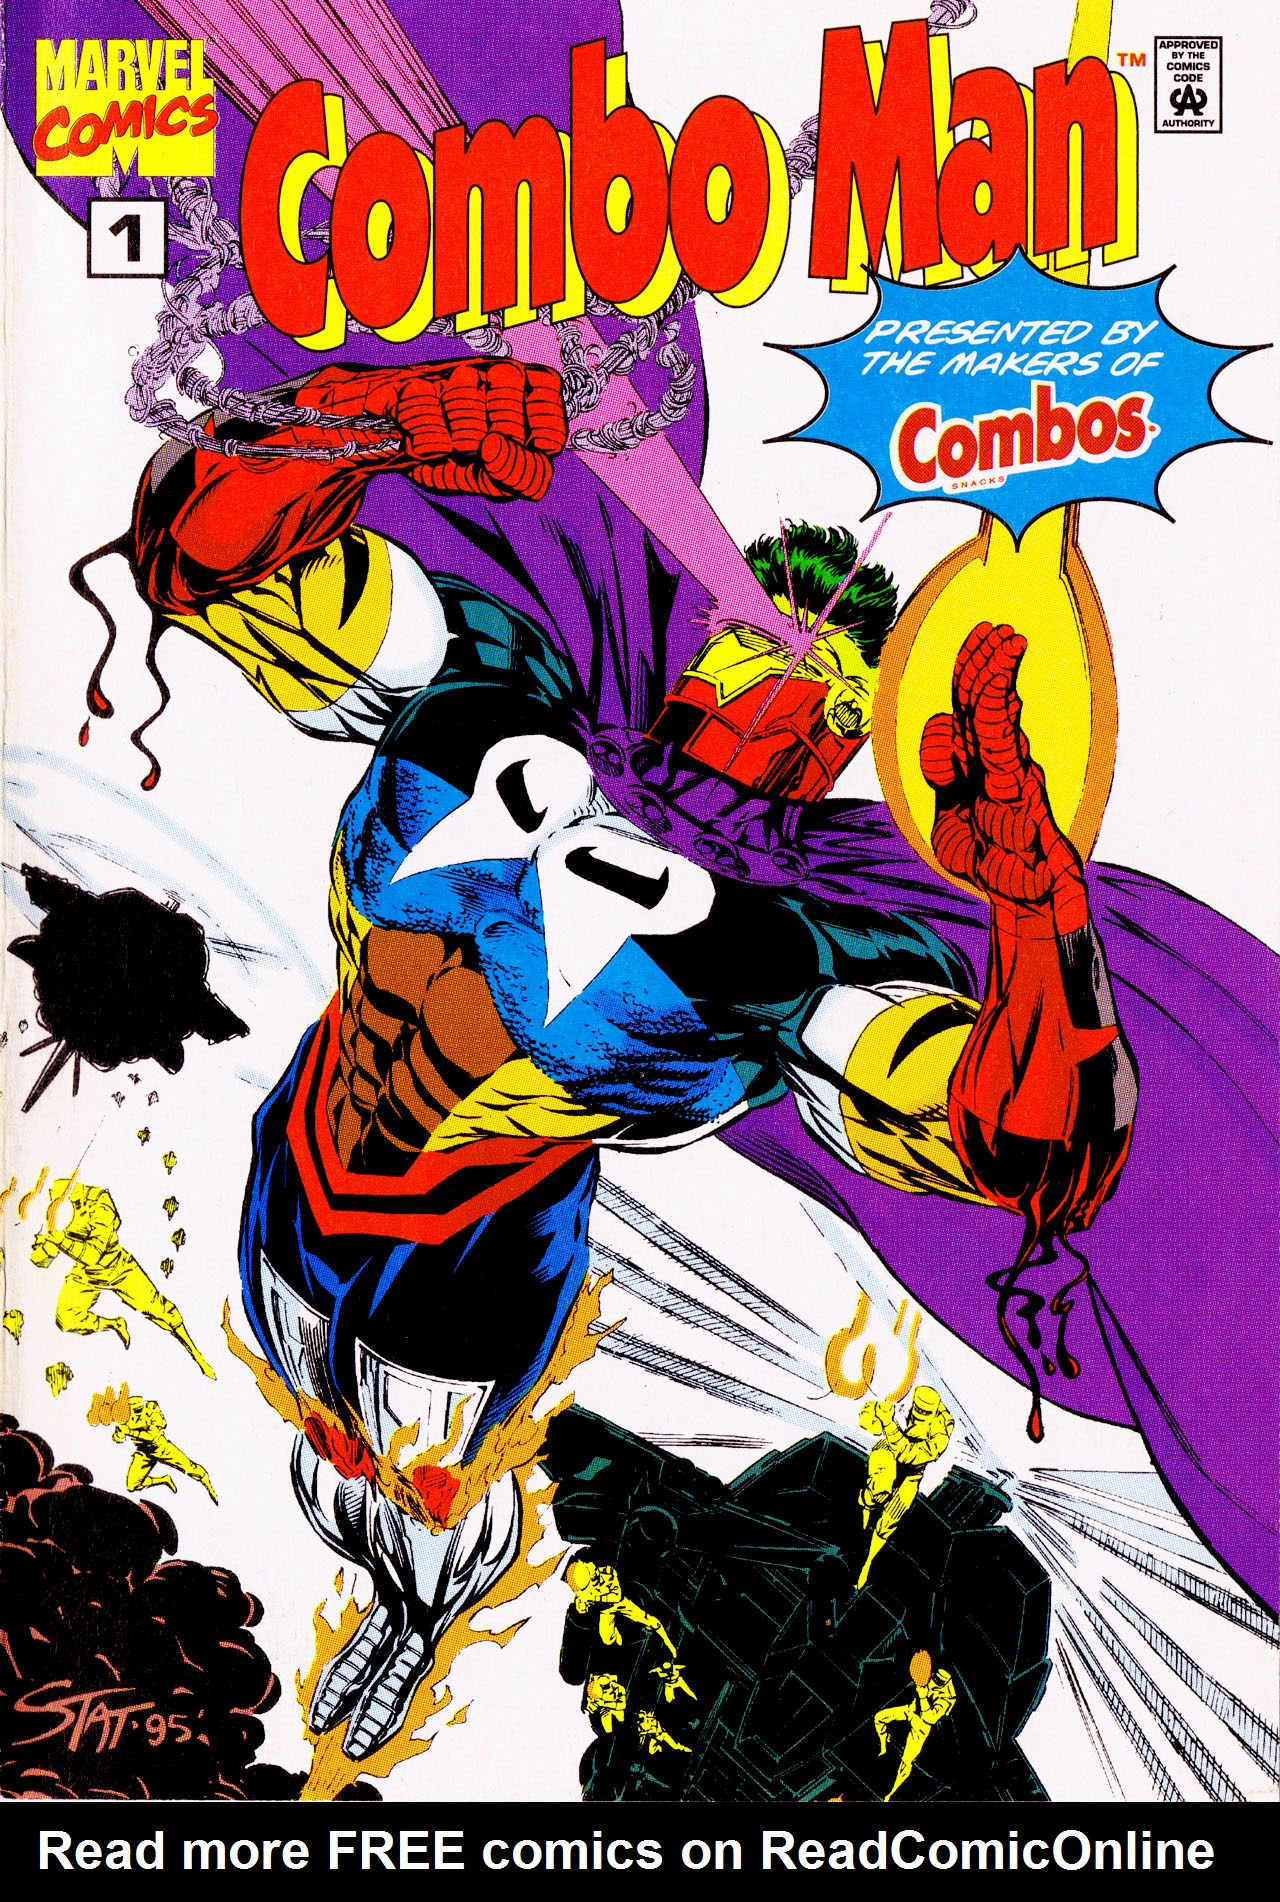 Read online Combo Man comic -  Issue # Full - 1